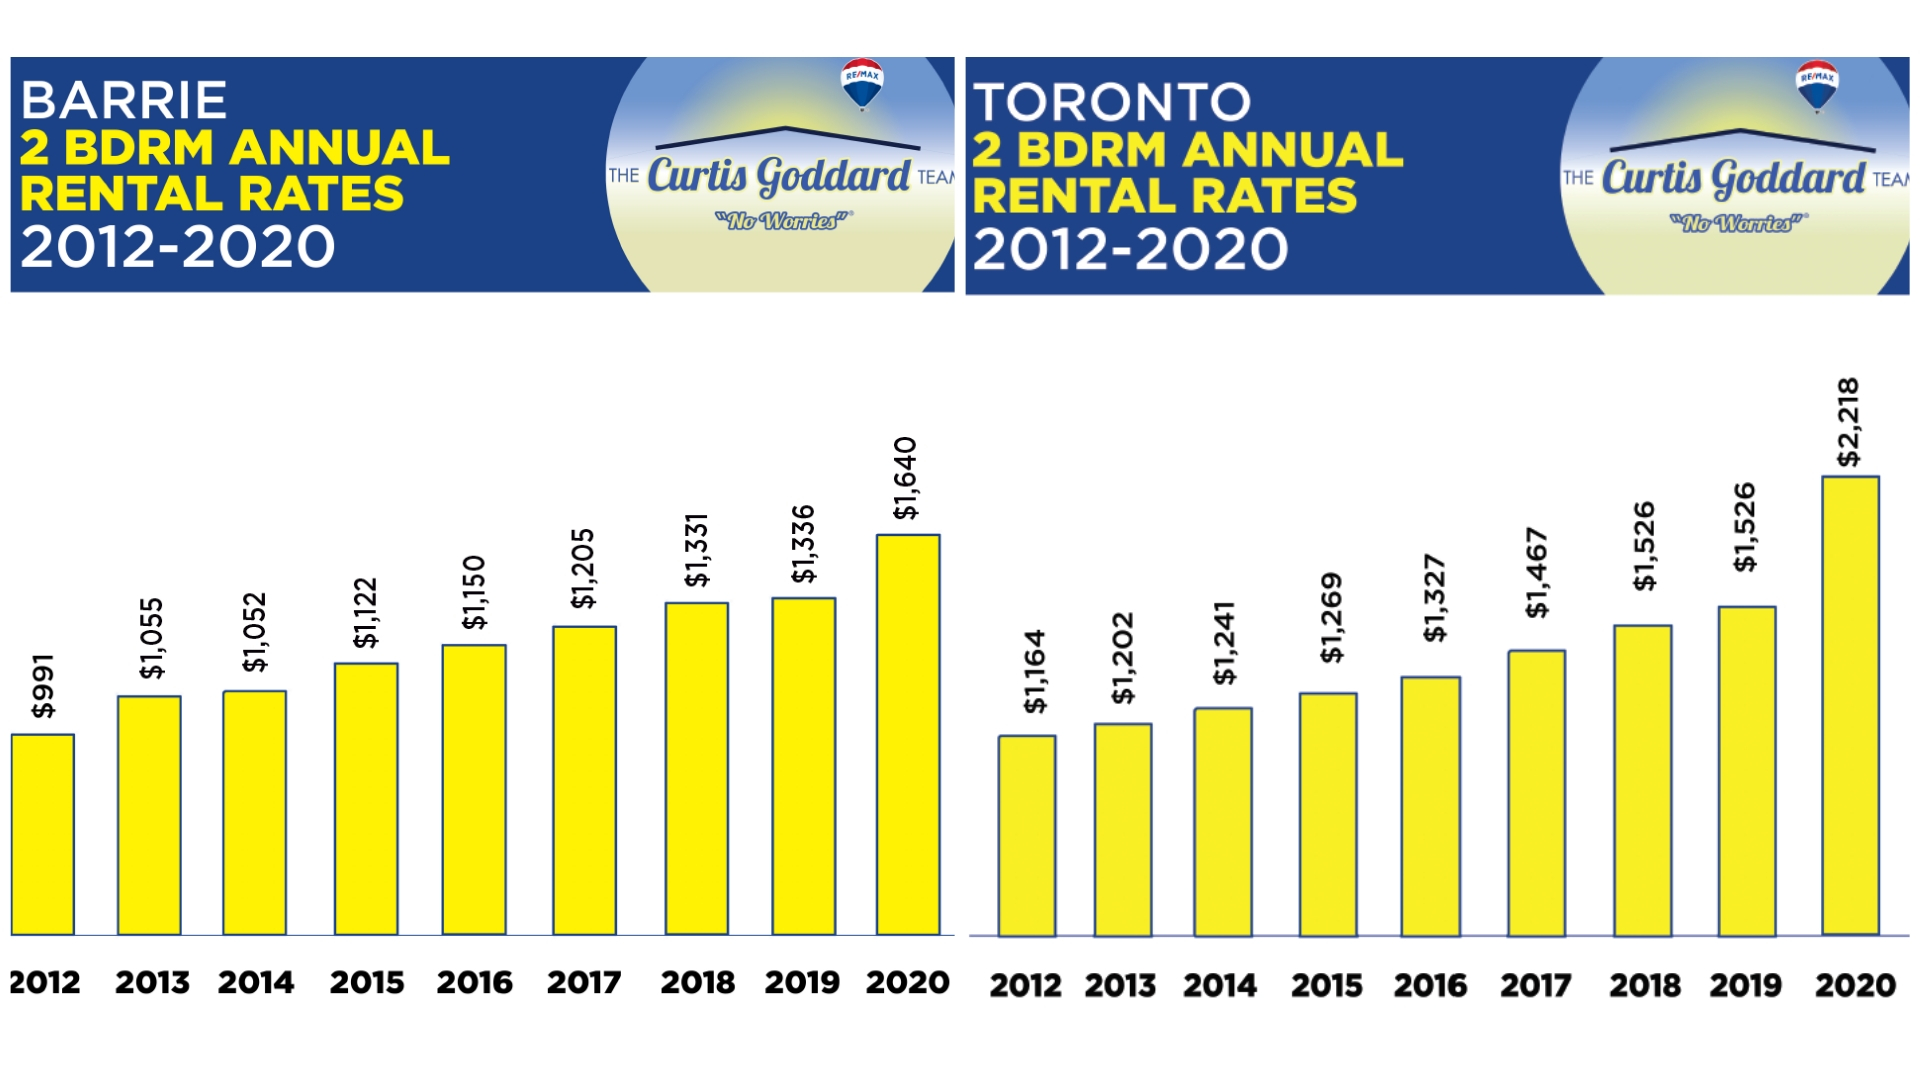 Barrie & Toronto Rental Rates